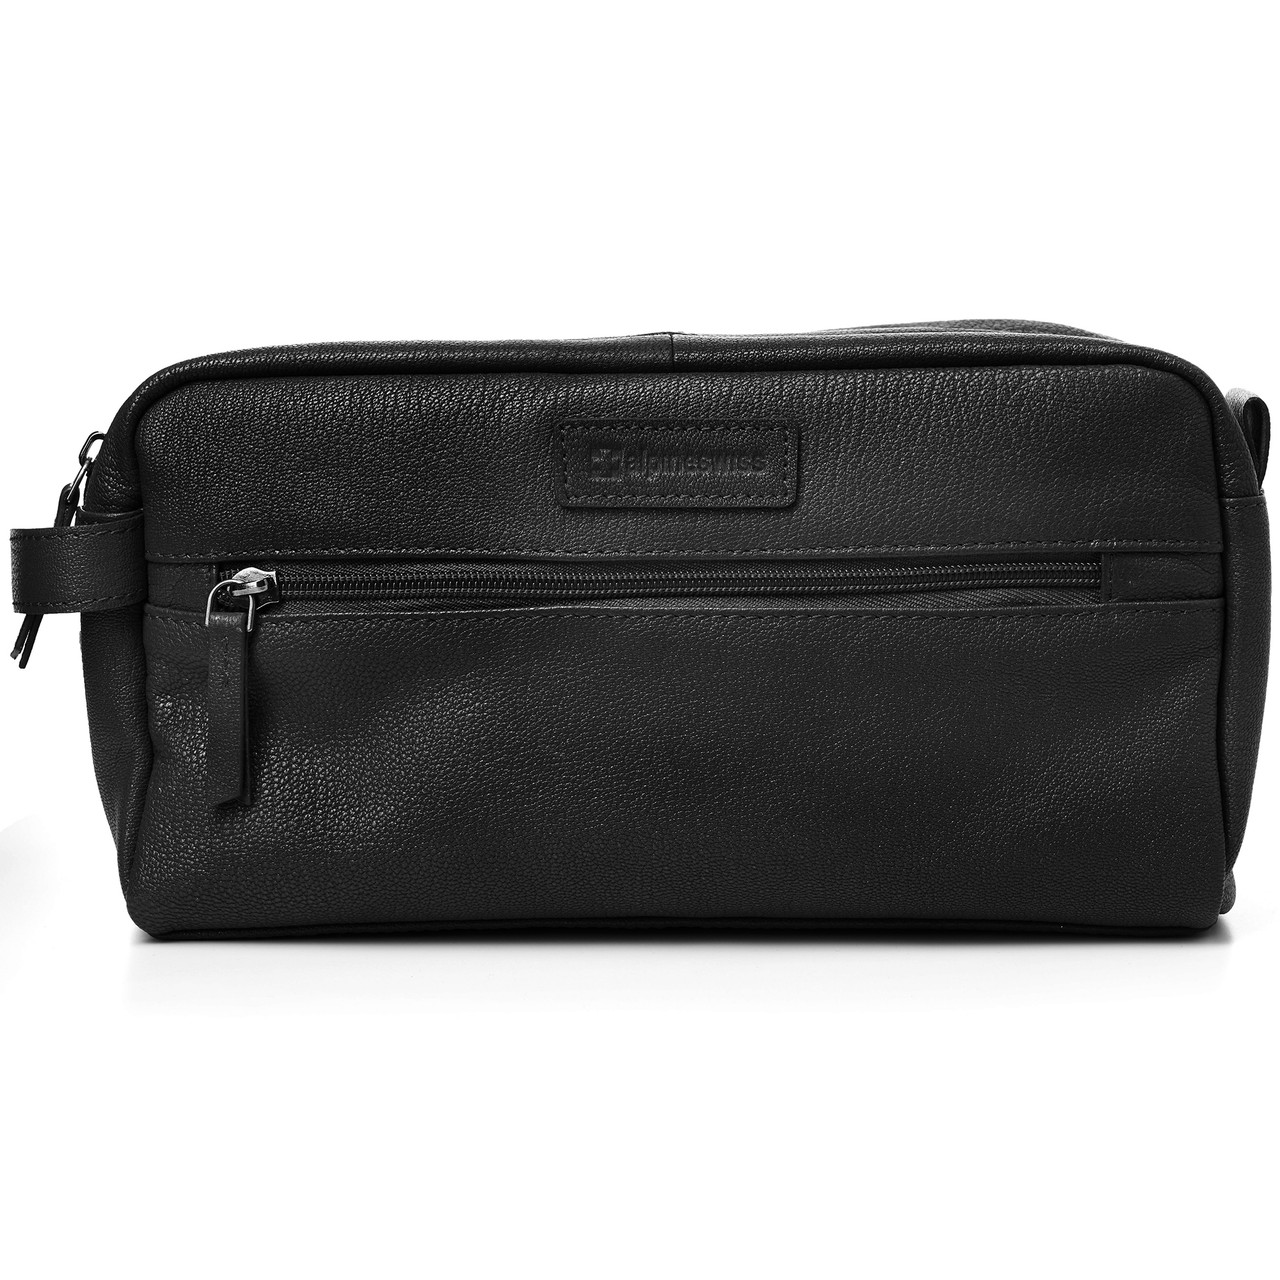 76f64ec5c907 Alpine Swiss Sedona Toiletry Bag Genuine Leather Shaving Kit Dopp ...